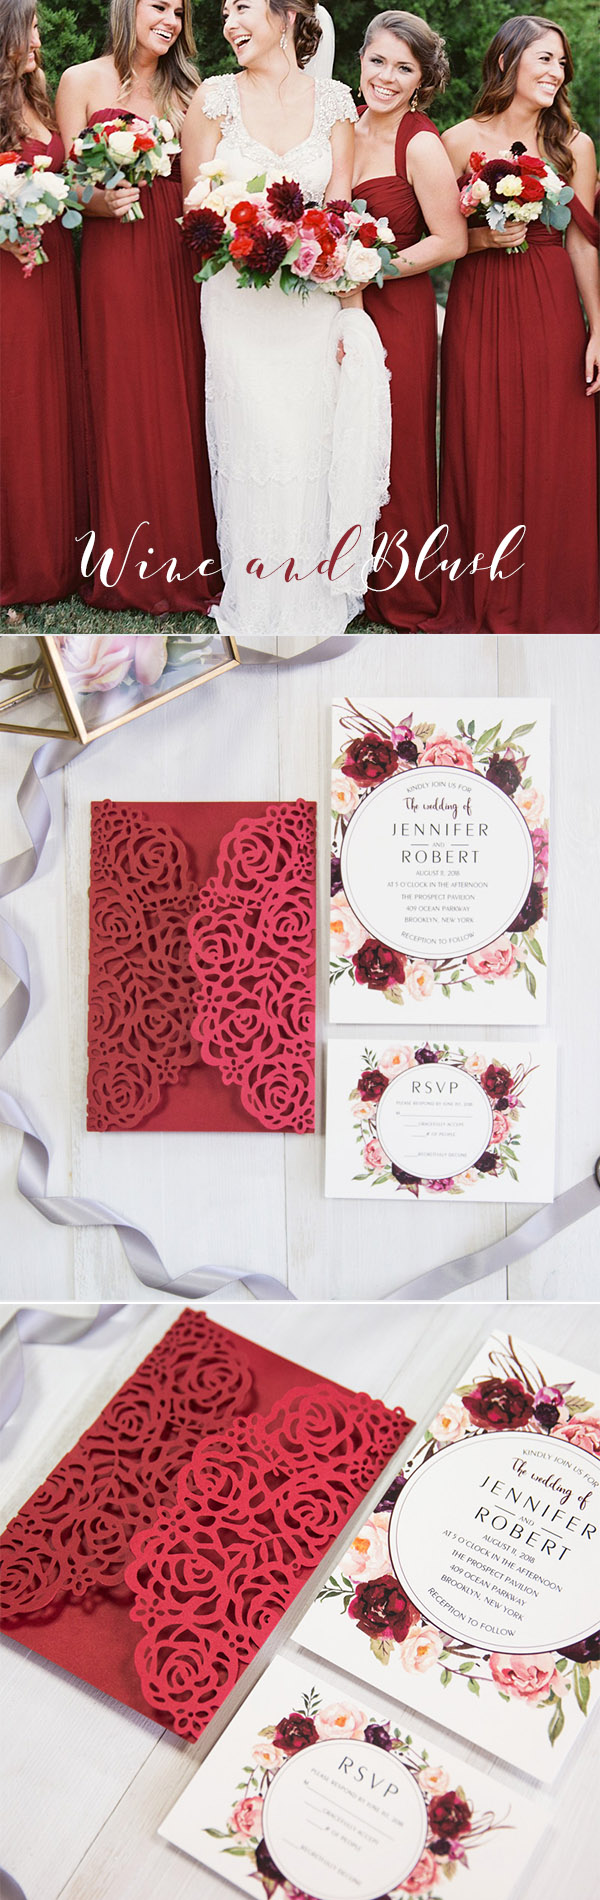 Wine Red and Blush Garden Wedding Color Inspiration